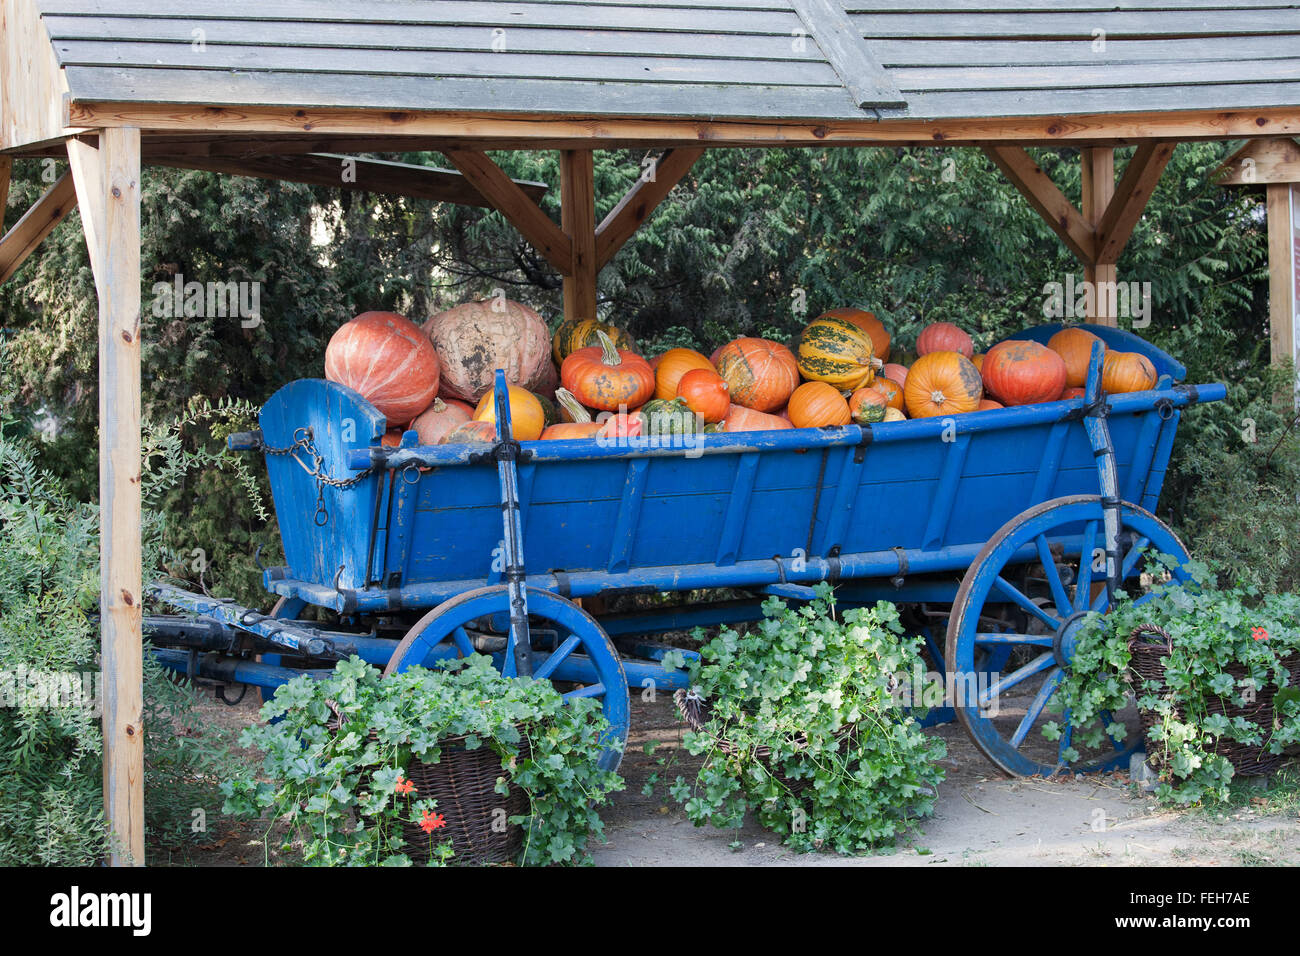 Pumpkins of different kinds on a blue traditional wagon under a roof as display in Wroclaw Zoo, Poland Stock Photo